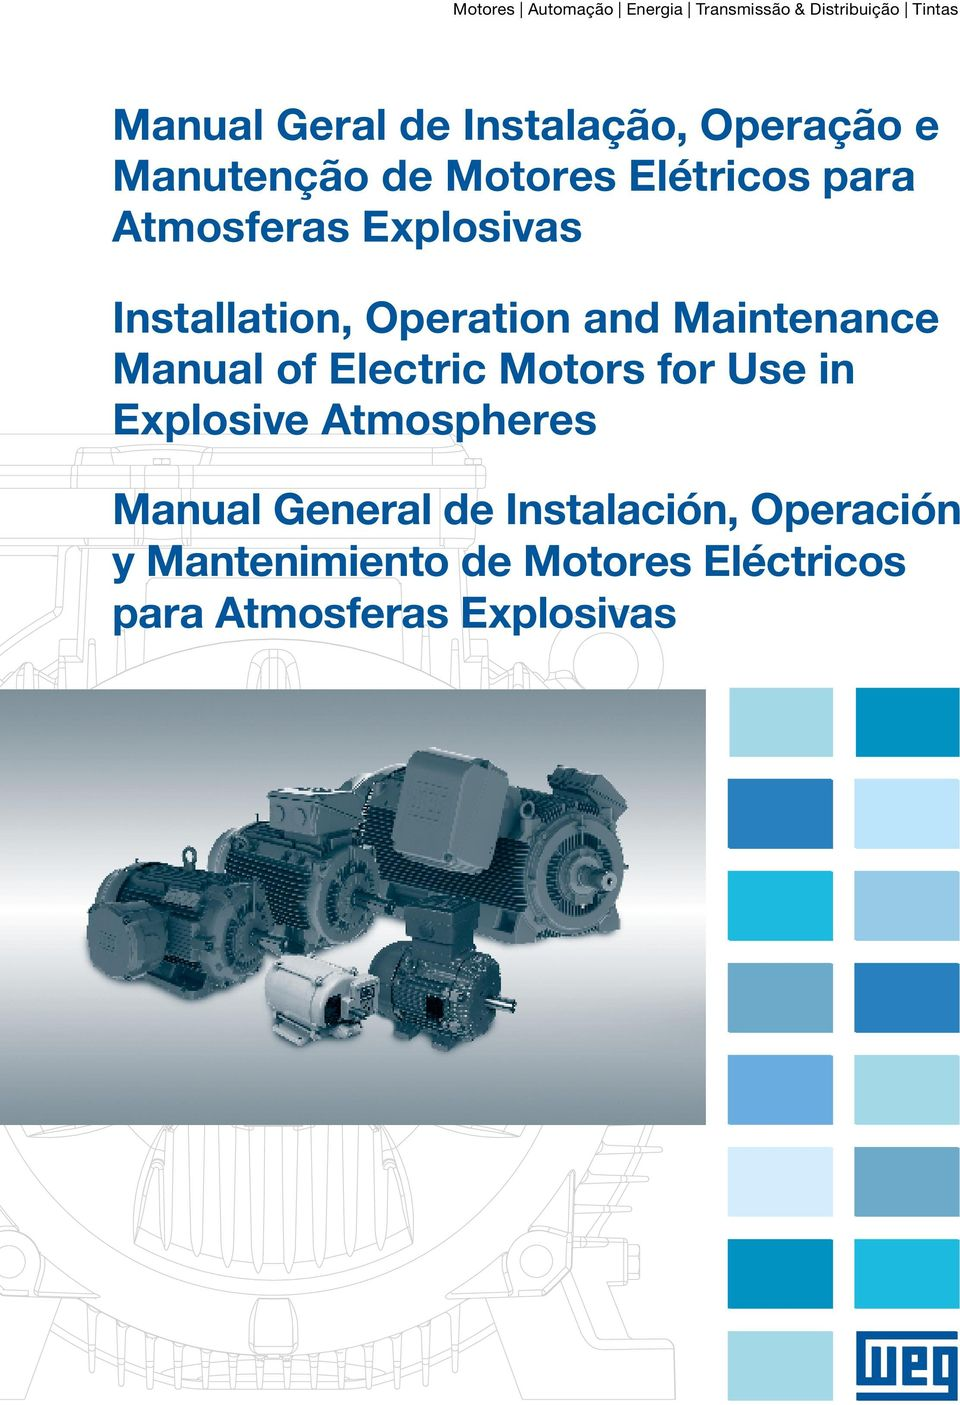 Operation and Maintenance Manual of Electric Motors for Use in Explosive Atmospheres